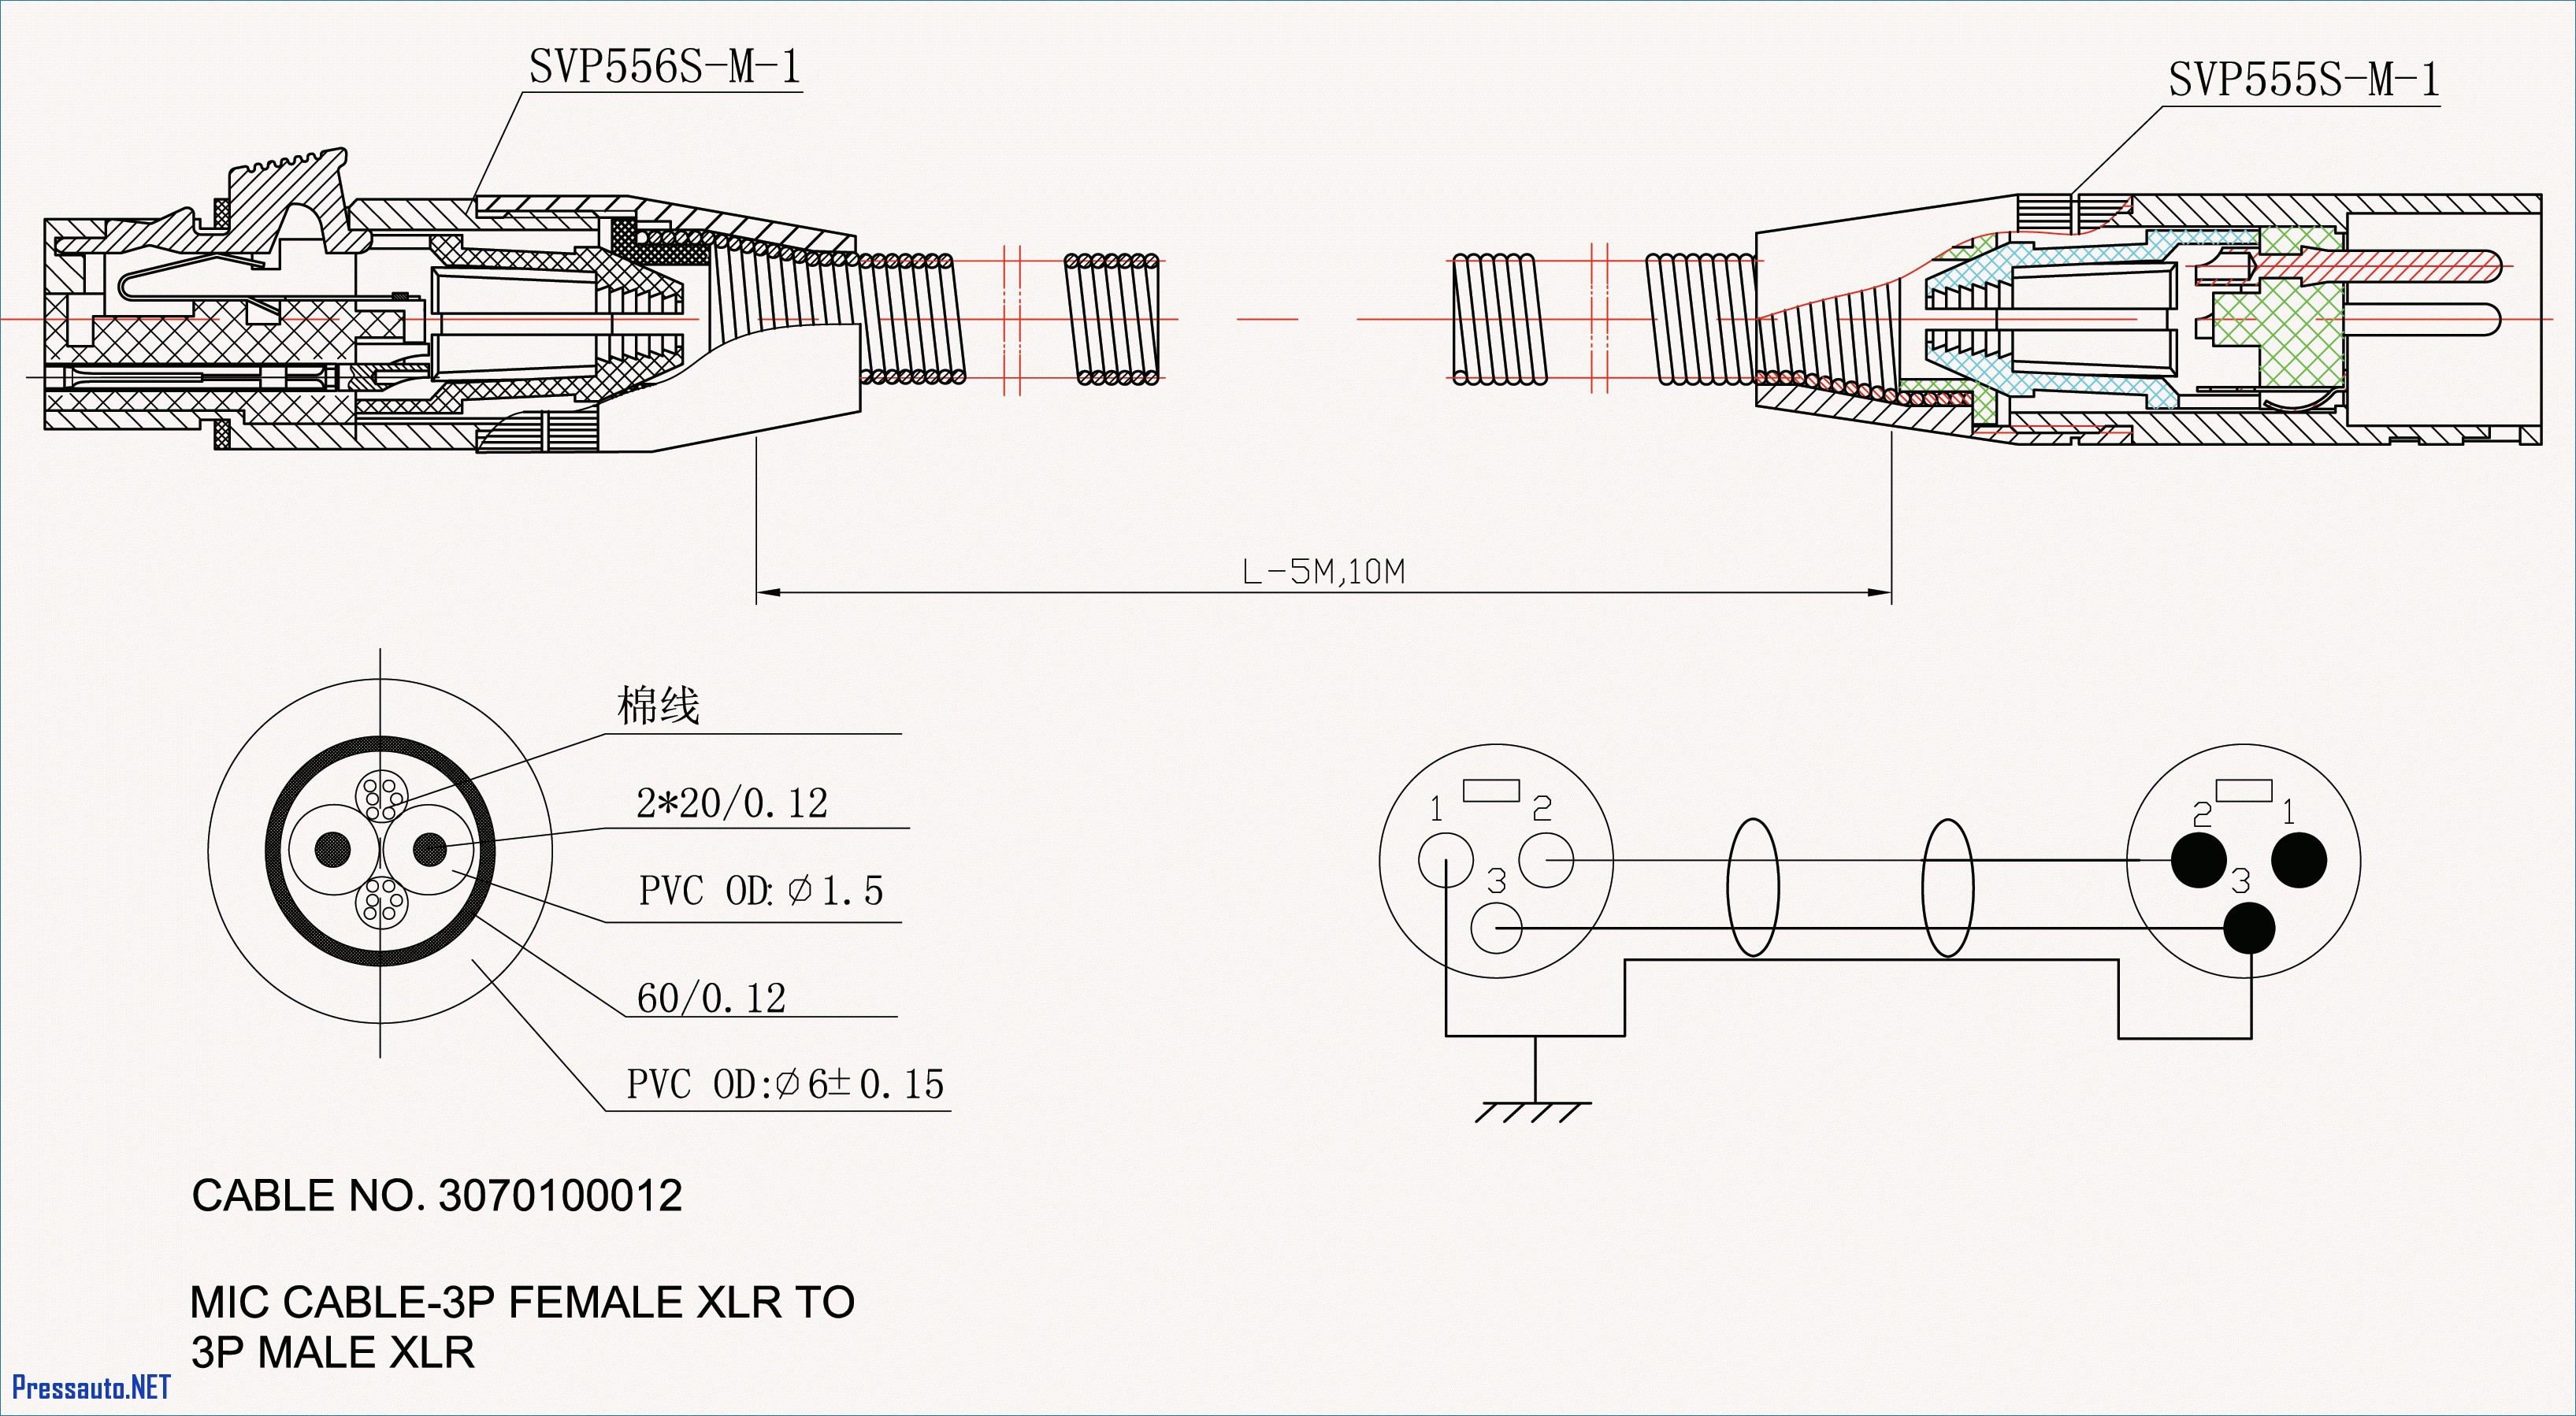 icm254 wiring diagram Collection-data link connector wiring diagram Download 3 Wire Alternator Wiring Diagram Chevy Inspirationa Mic 3 10-k